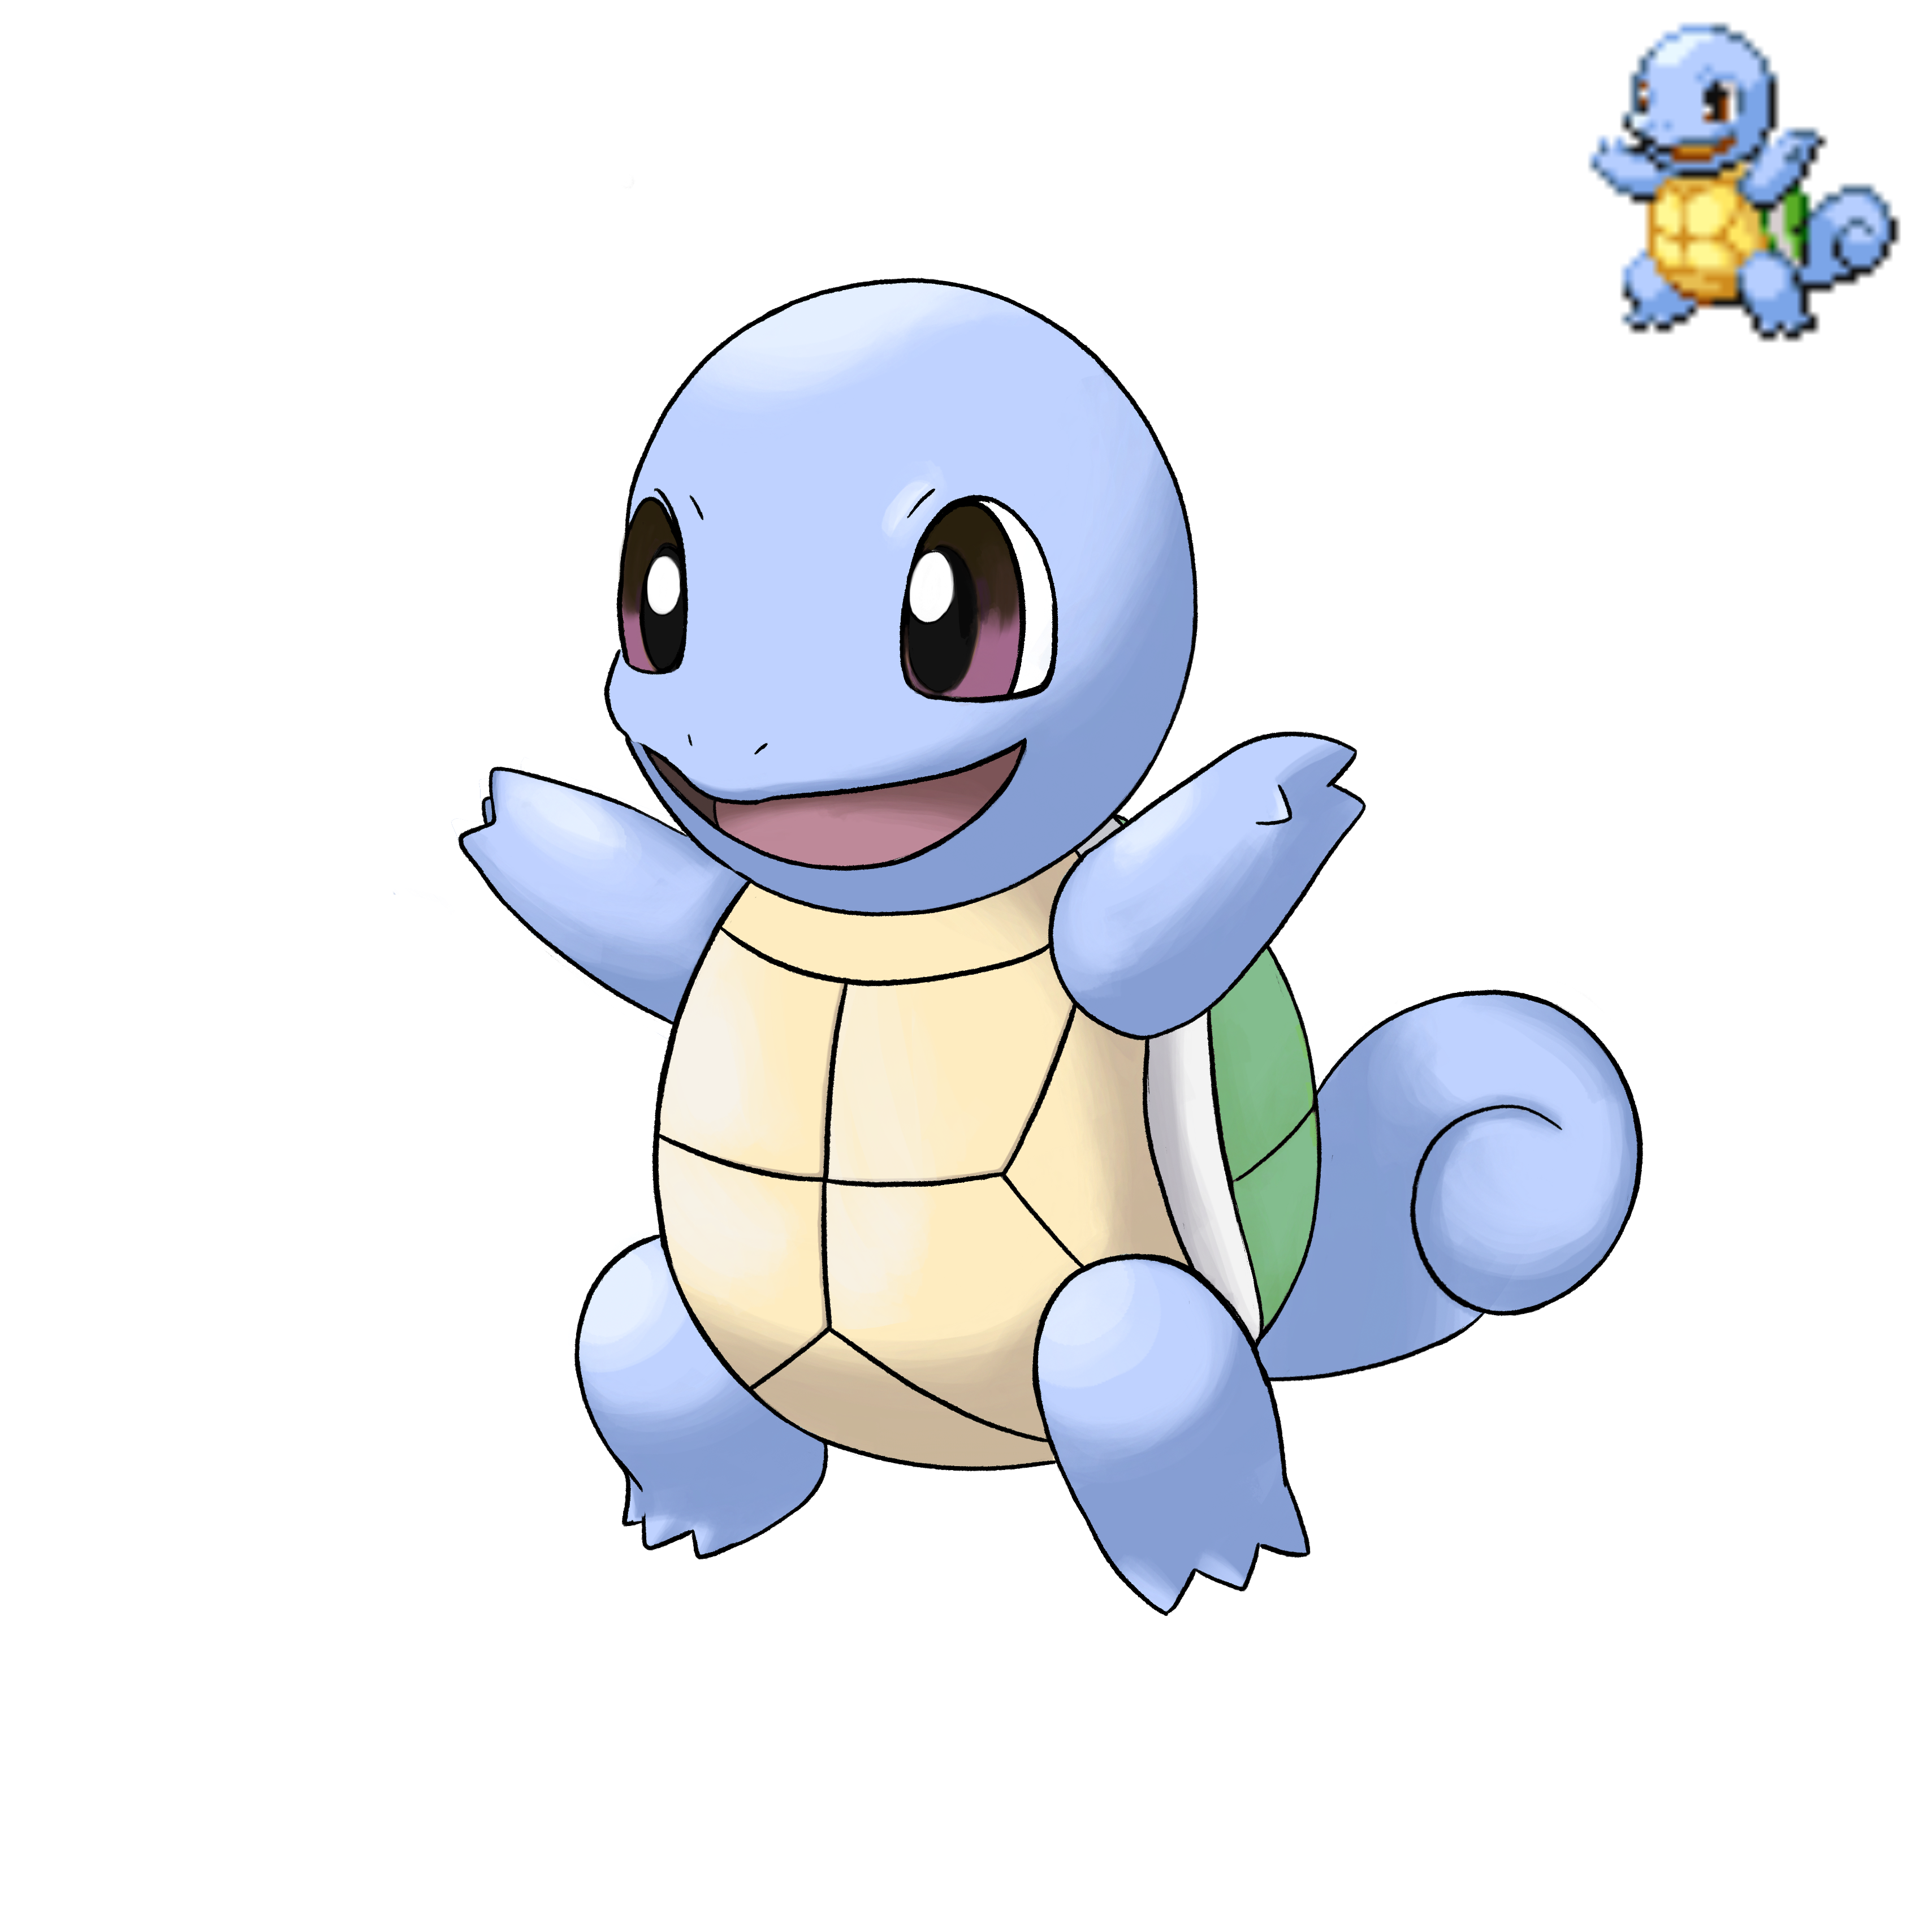 Shiny Squirtle Dp Sprite Showcase By Lazoofficial On Deviantart It evolves into wartortle at level 16, who evolves further into blastoise at level 36. shiny squirtle dp sprite showcase by